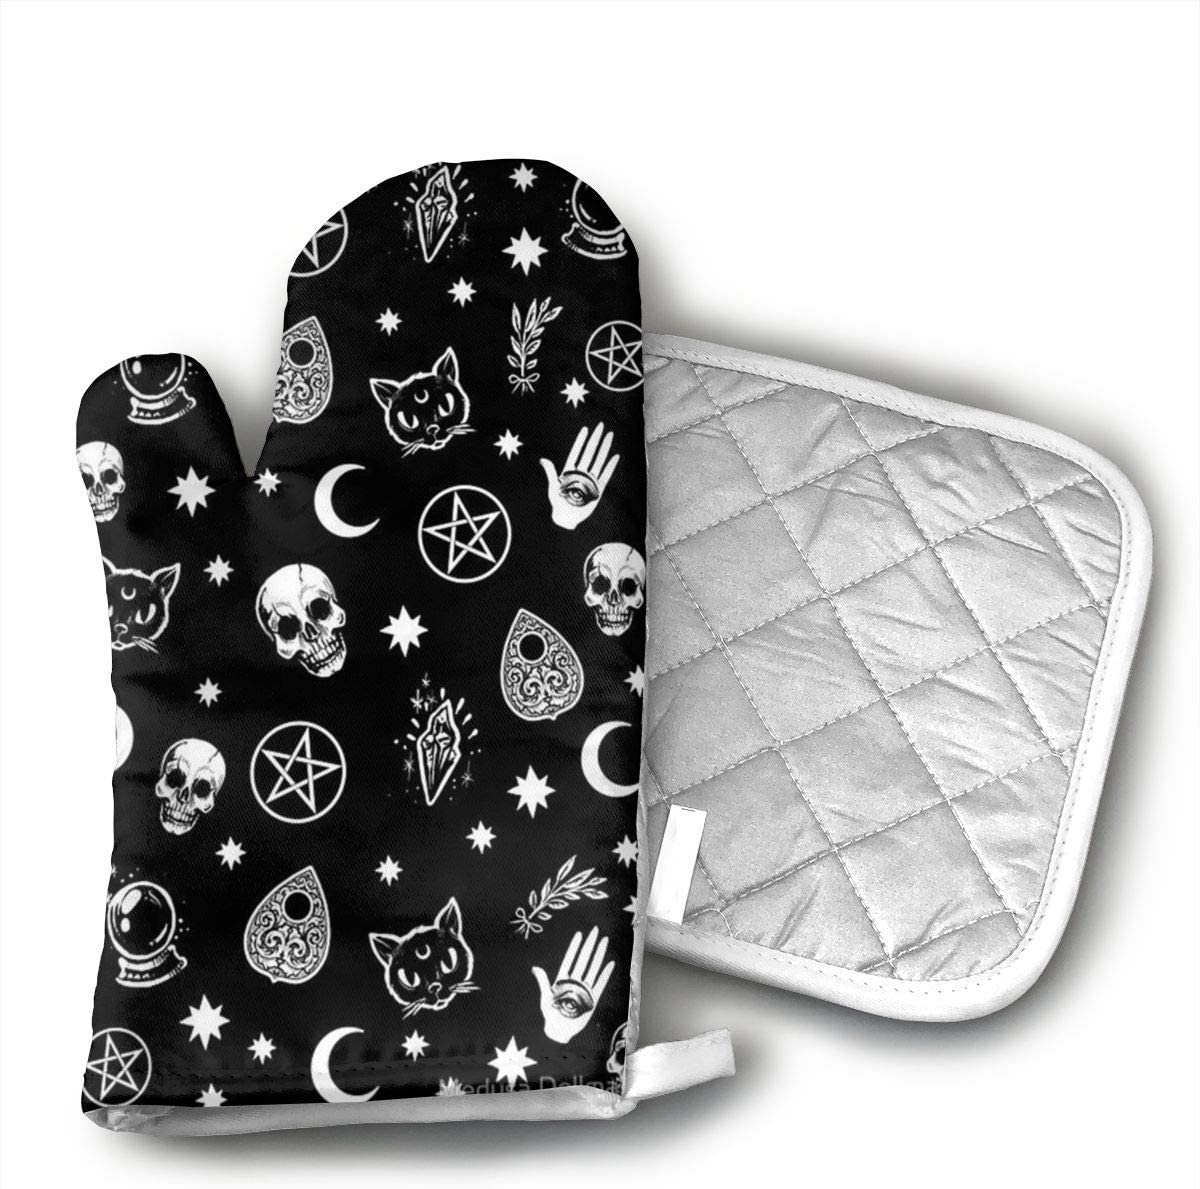 Jiqnajn6 Colorful Skull Cat Moon Gothic Pattern Oven Mitts,Heat Resistant Oven Gloves, Safe Cooking Baking, Grilling, Barbecue, Machine Washable,Pot Holders.